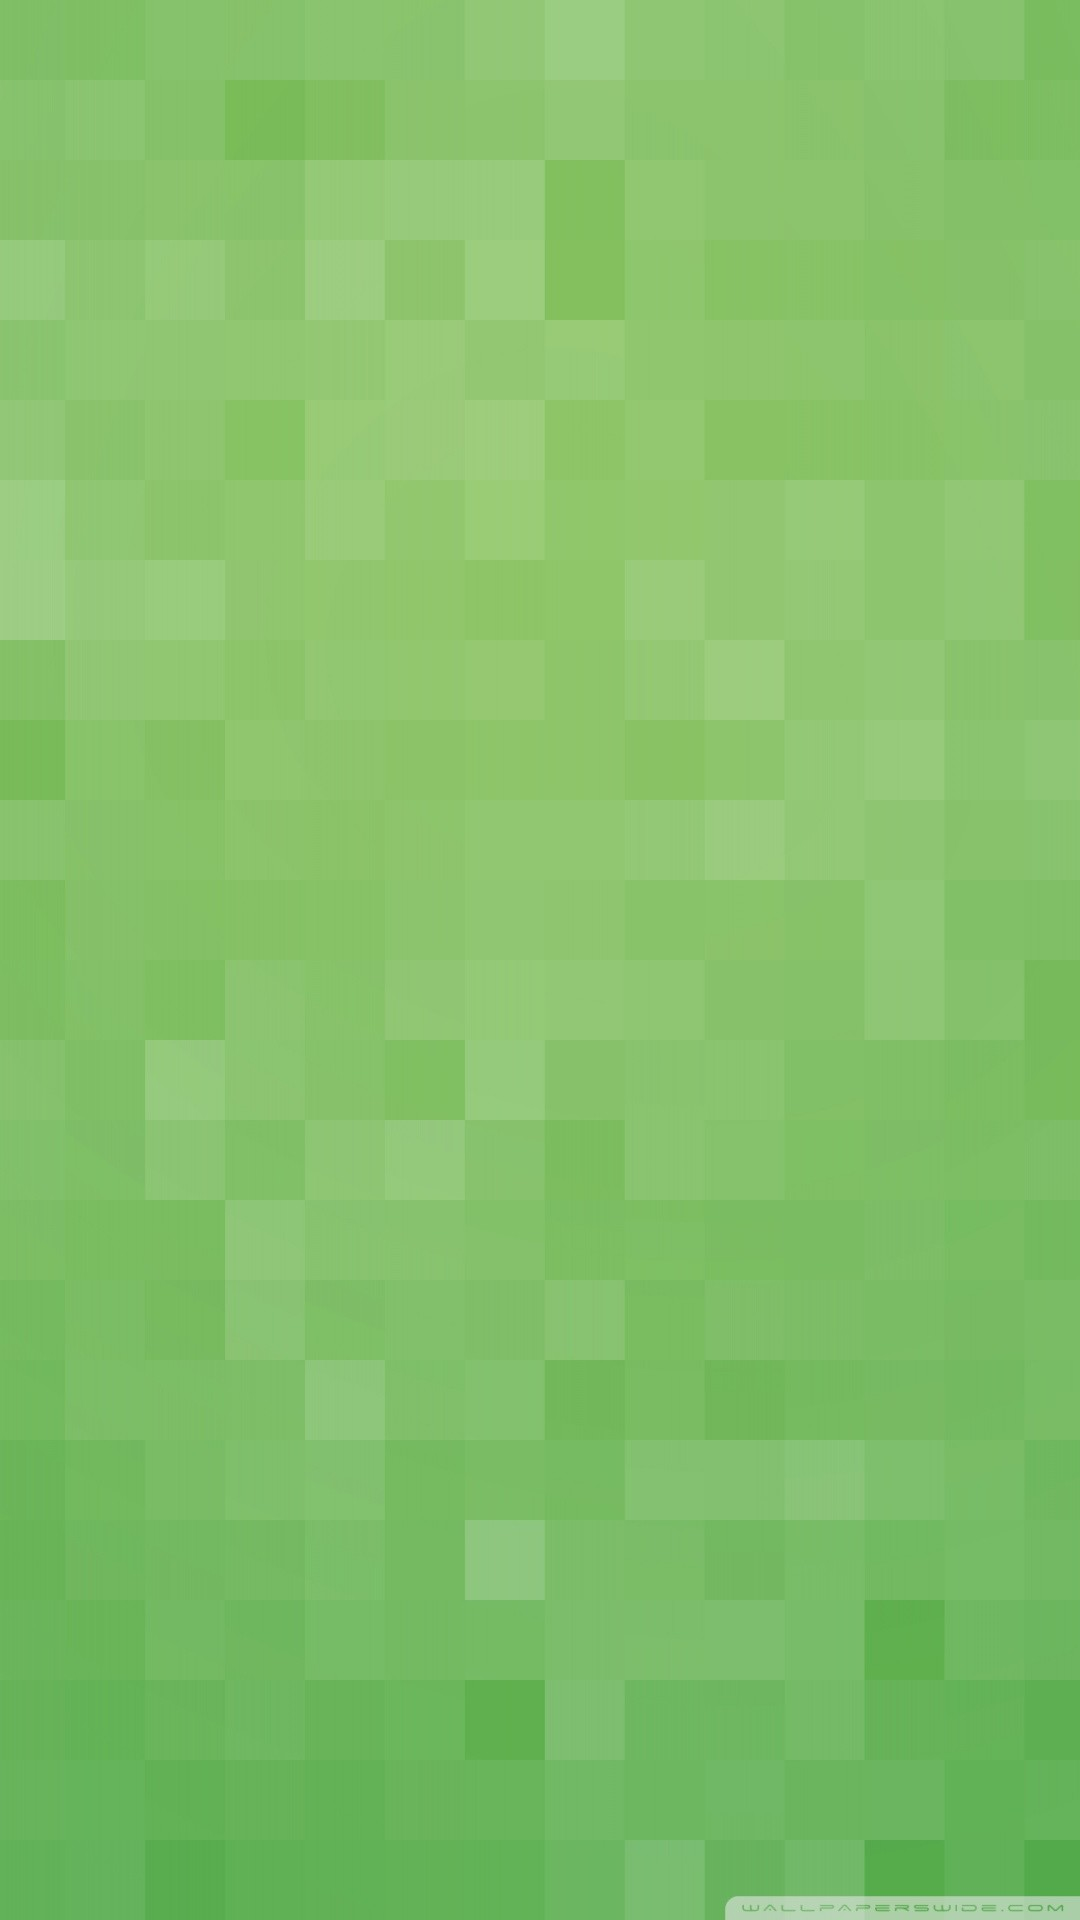 Free Green Pixels Background phone wallpaper by beast11